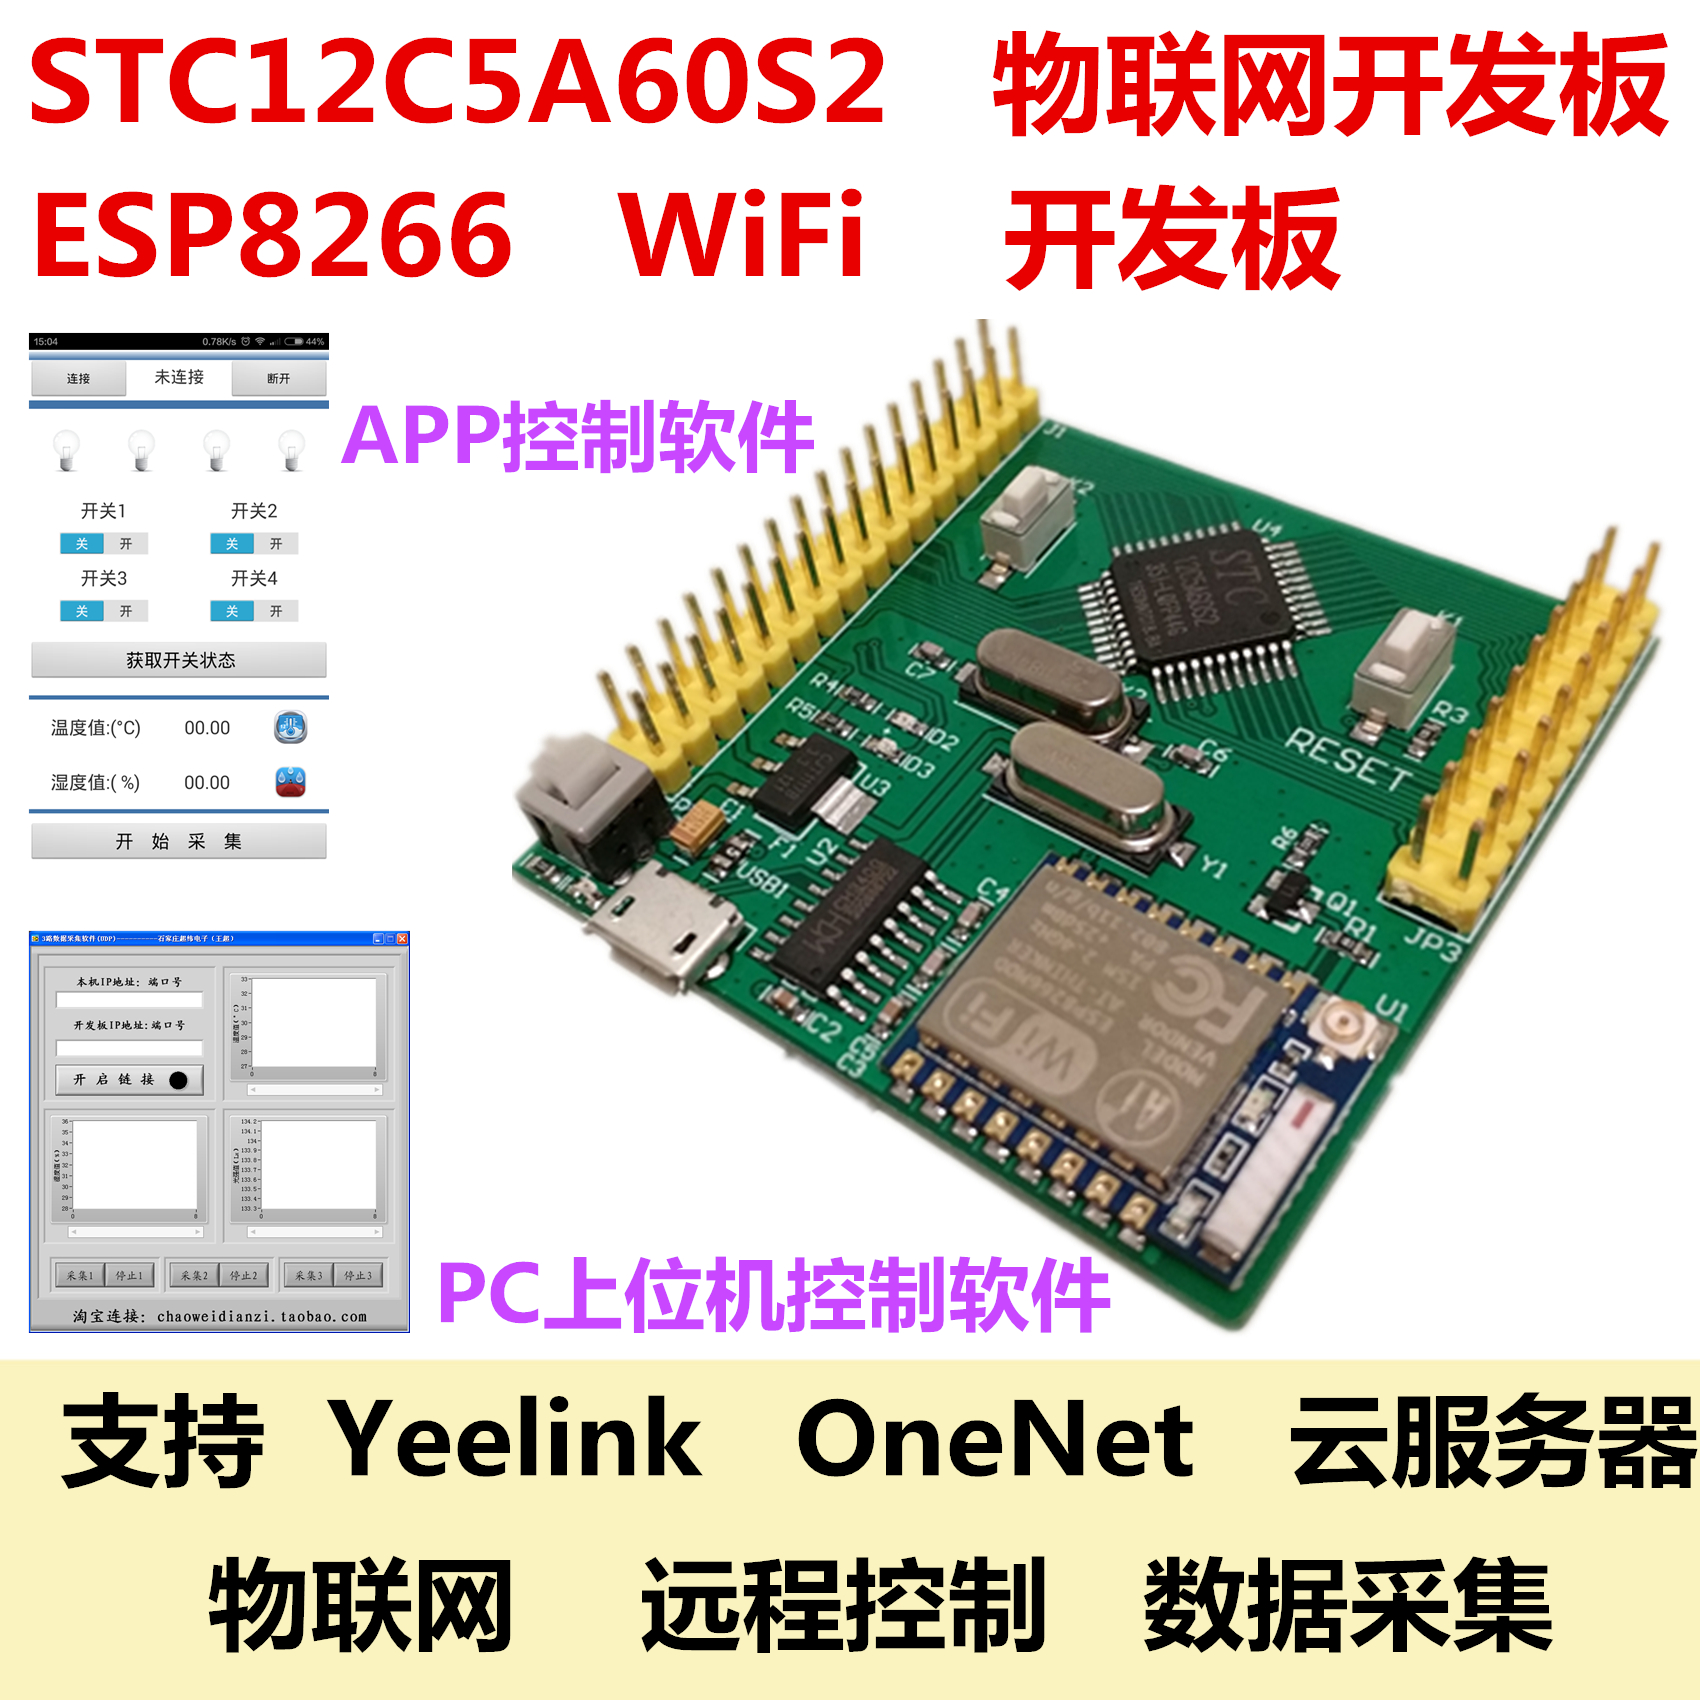 Internet of Things Remote Control, 51 MCU Development Board, ESP8266 WIFI Development Board, Smart Home esp8266 iot internet of things sdk source code android app source code smart home wifi development board with tutorials